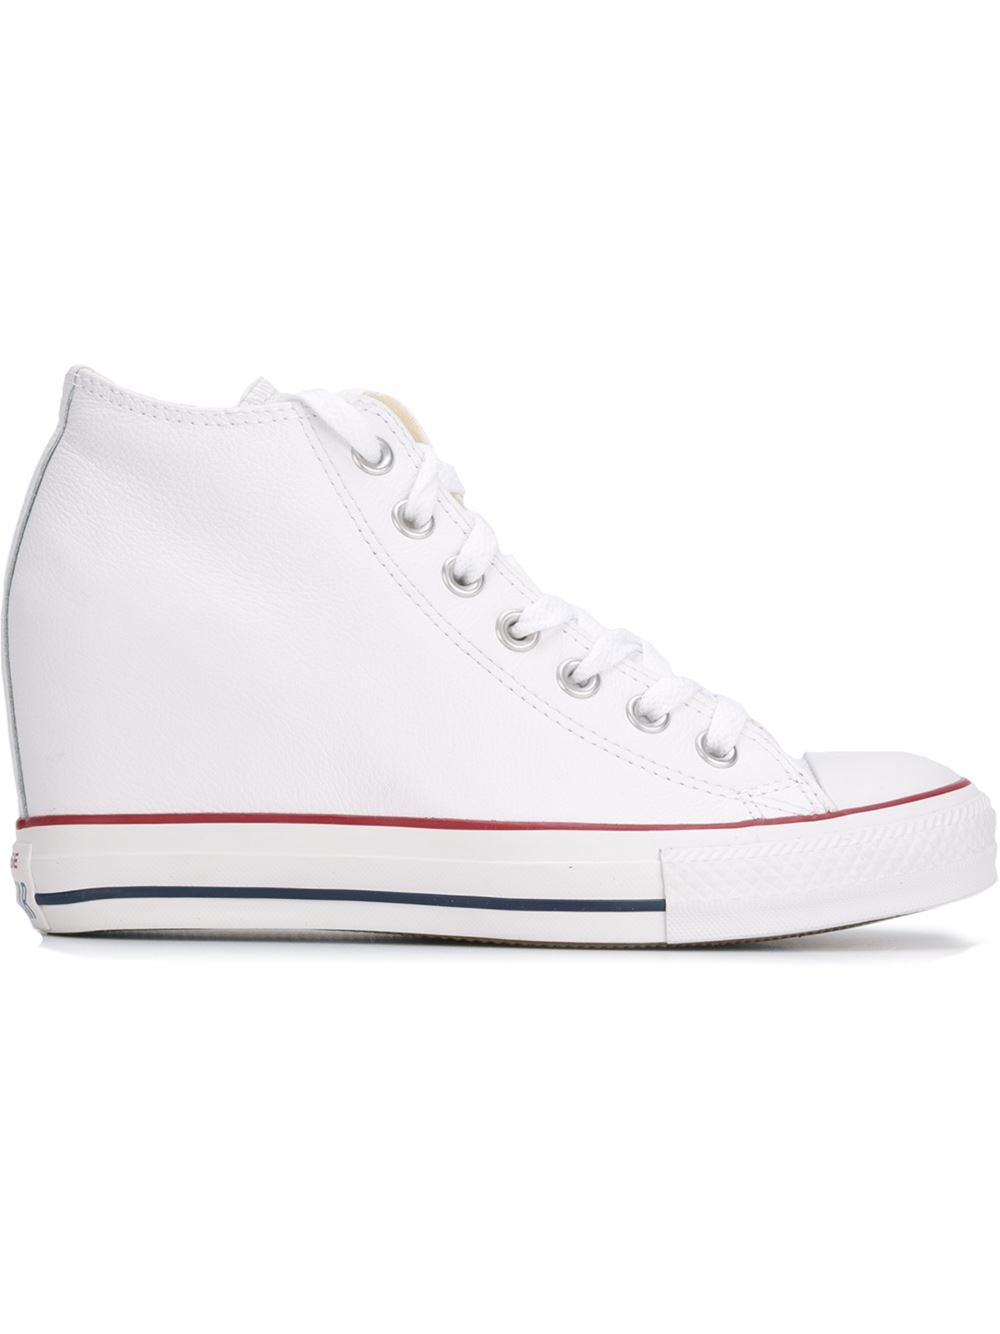 825328756e6 Gallery. Previously sold at  Farfetch · Women s Wedge Sneakers Women s  Converse Chuck Taylor ...